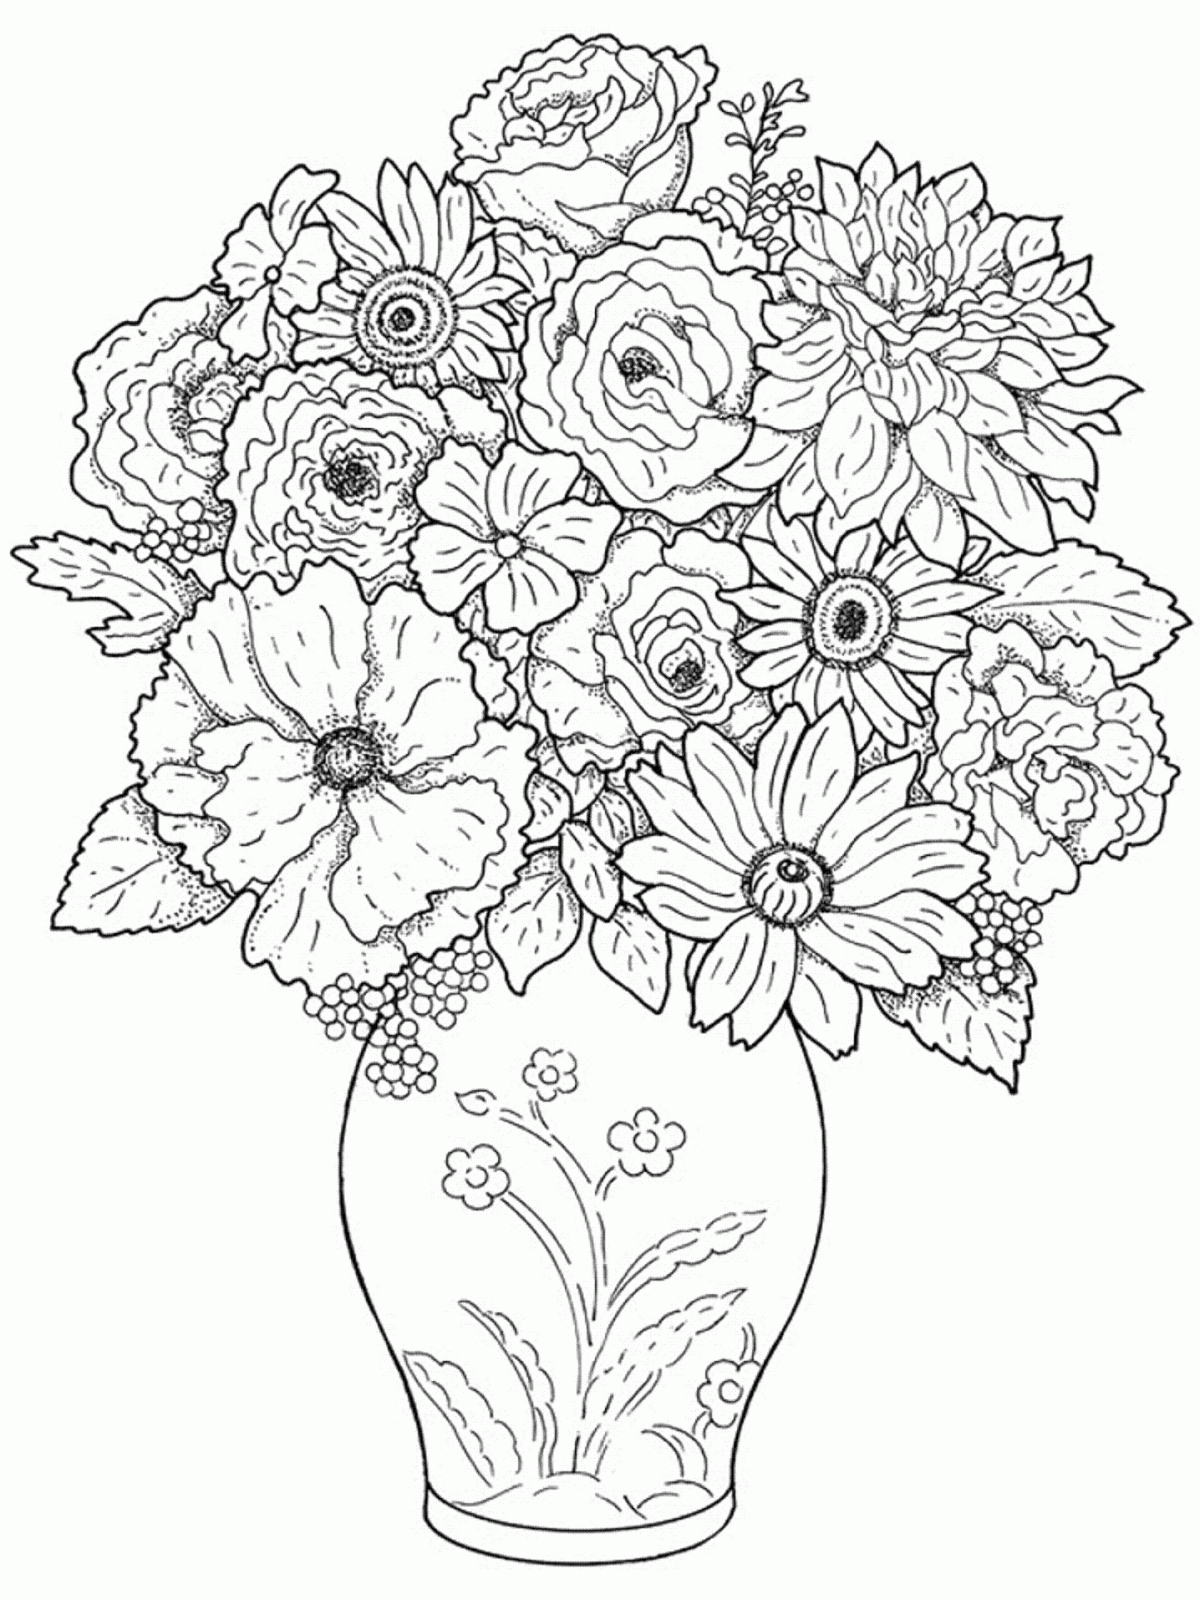 Flower in a vase drawing at getdrawings free for personal use 1200x1600 beautiful and easy drawings of flower vase izmirmasajfo Choice Image